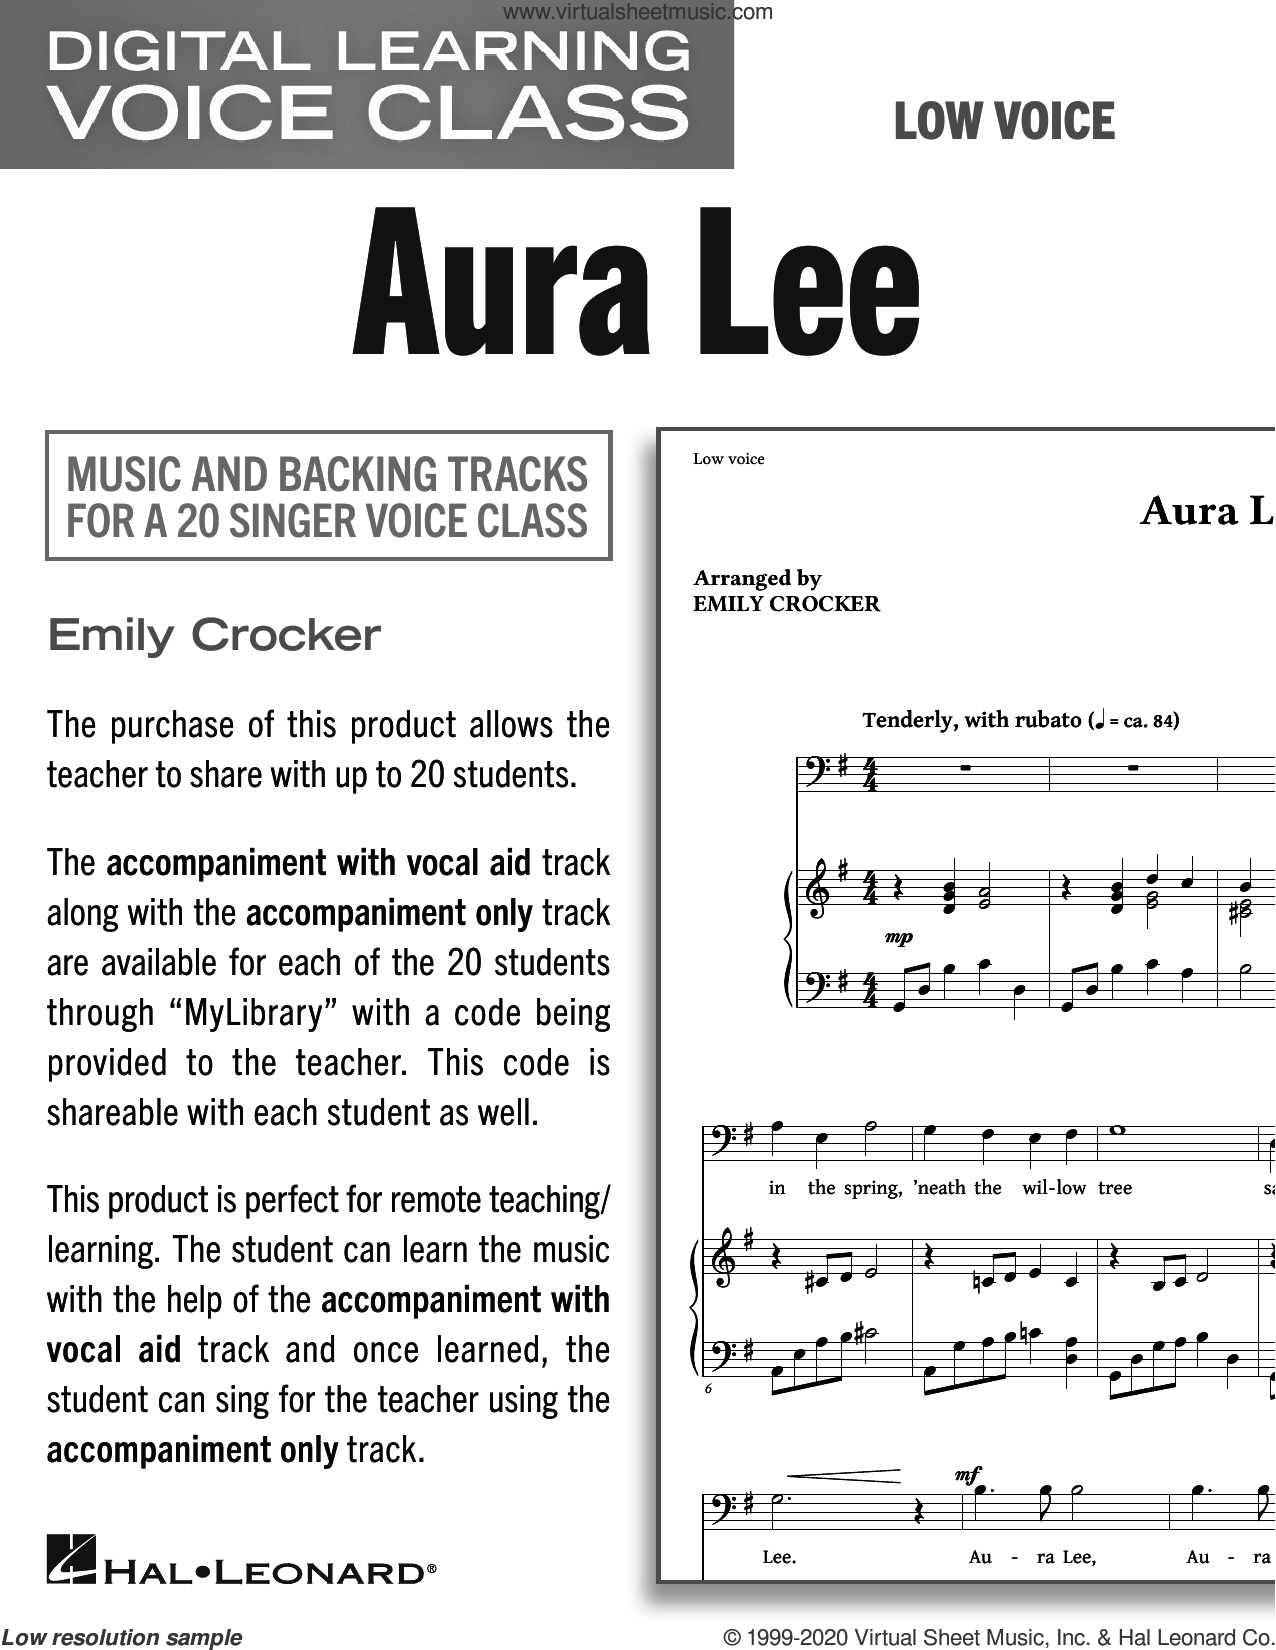 Aura Lee (Medium Low Voice) (includes Audio) sheet music for voice and piano (Medium Low Voice) by George R. Poulton, Emily Crocker and W.W. Fosdick, intermediate skill level